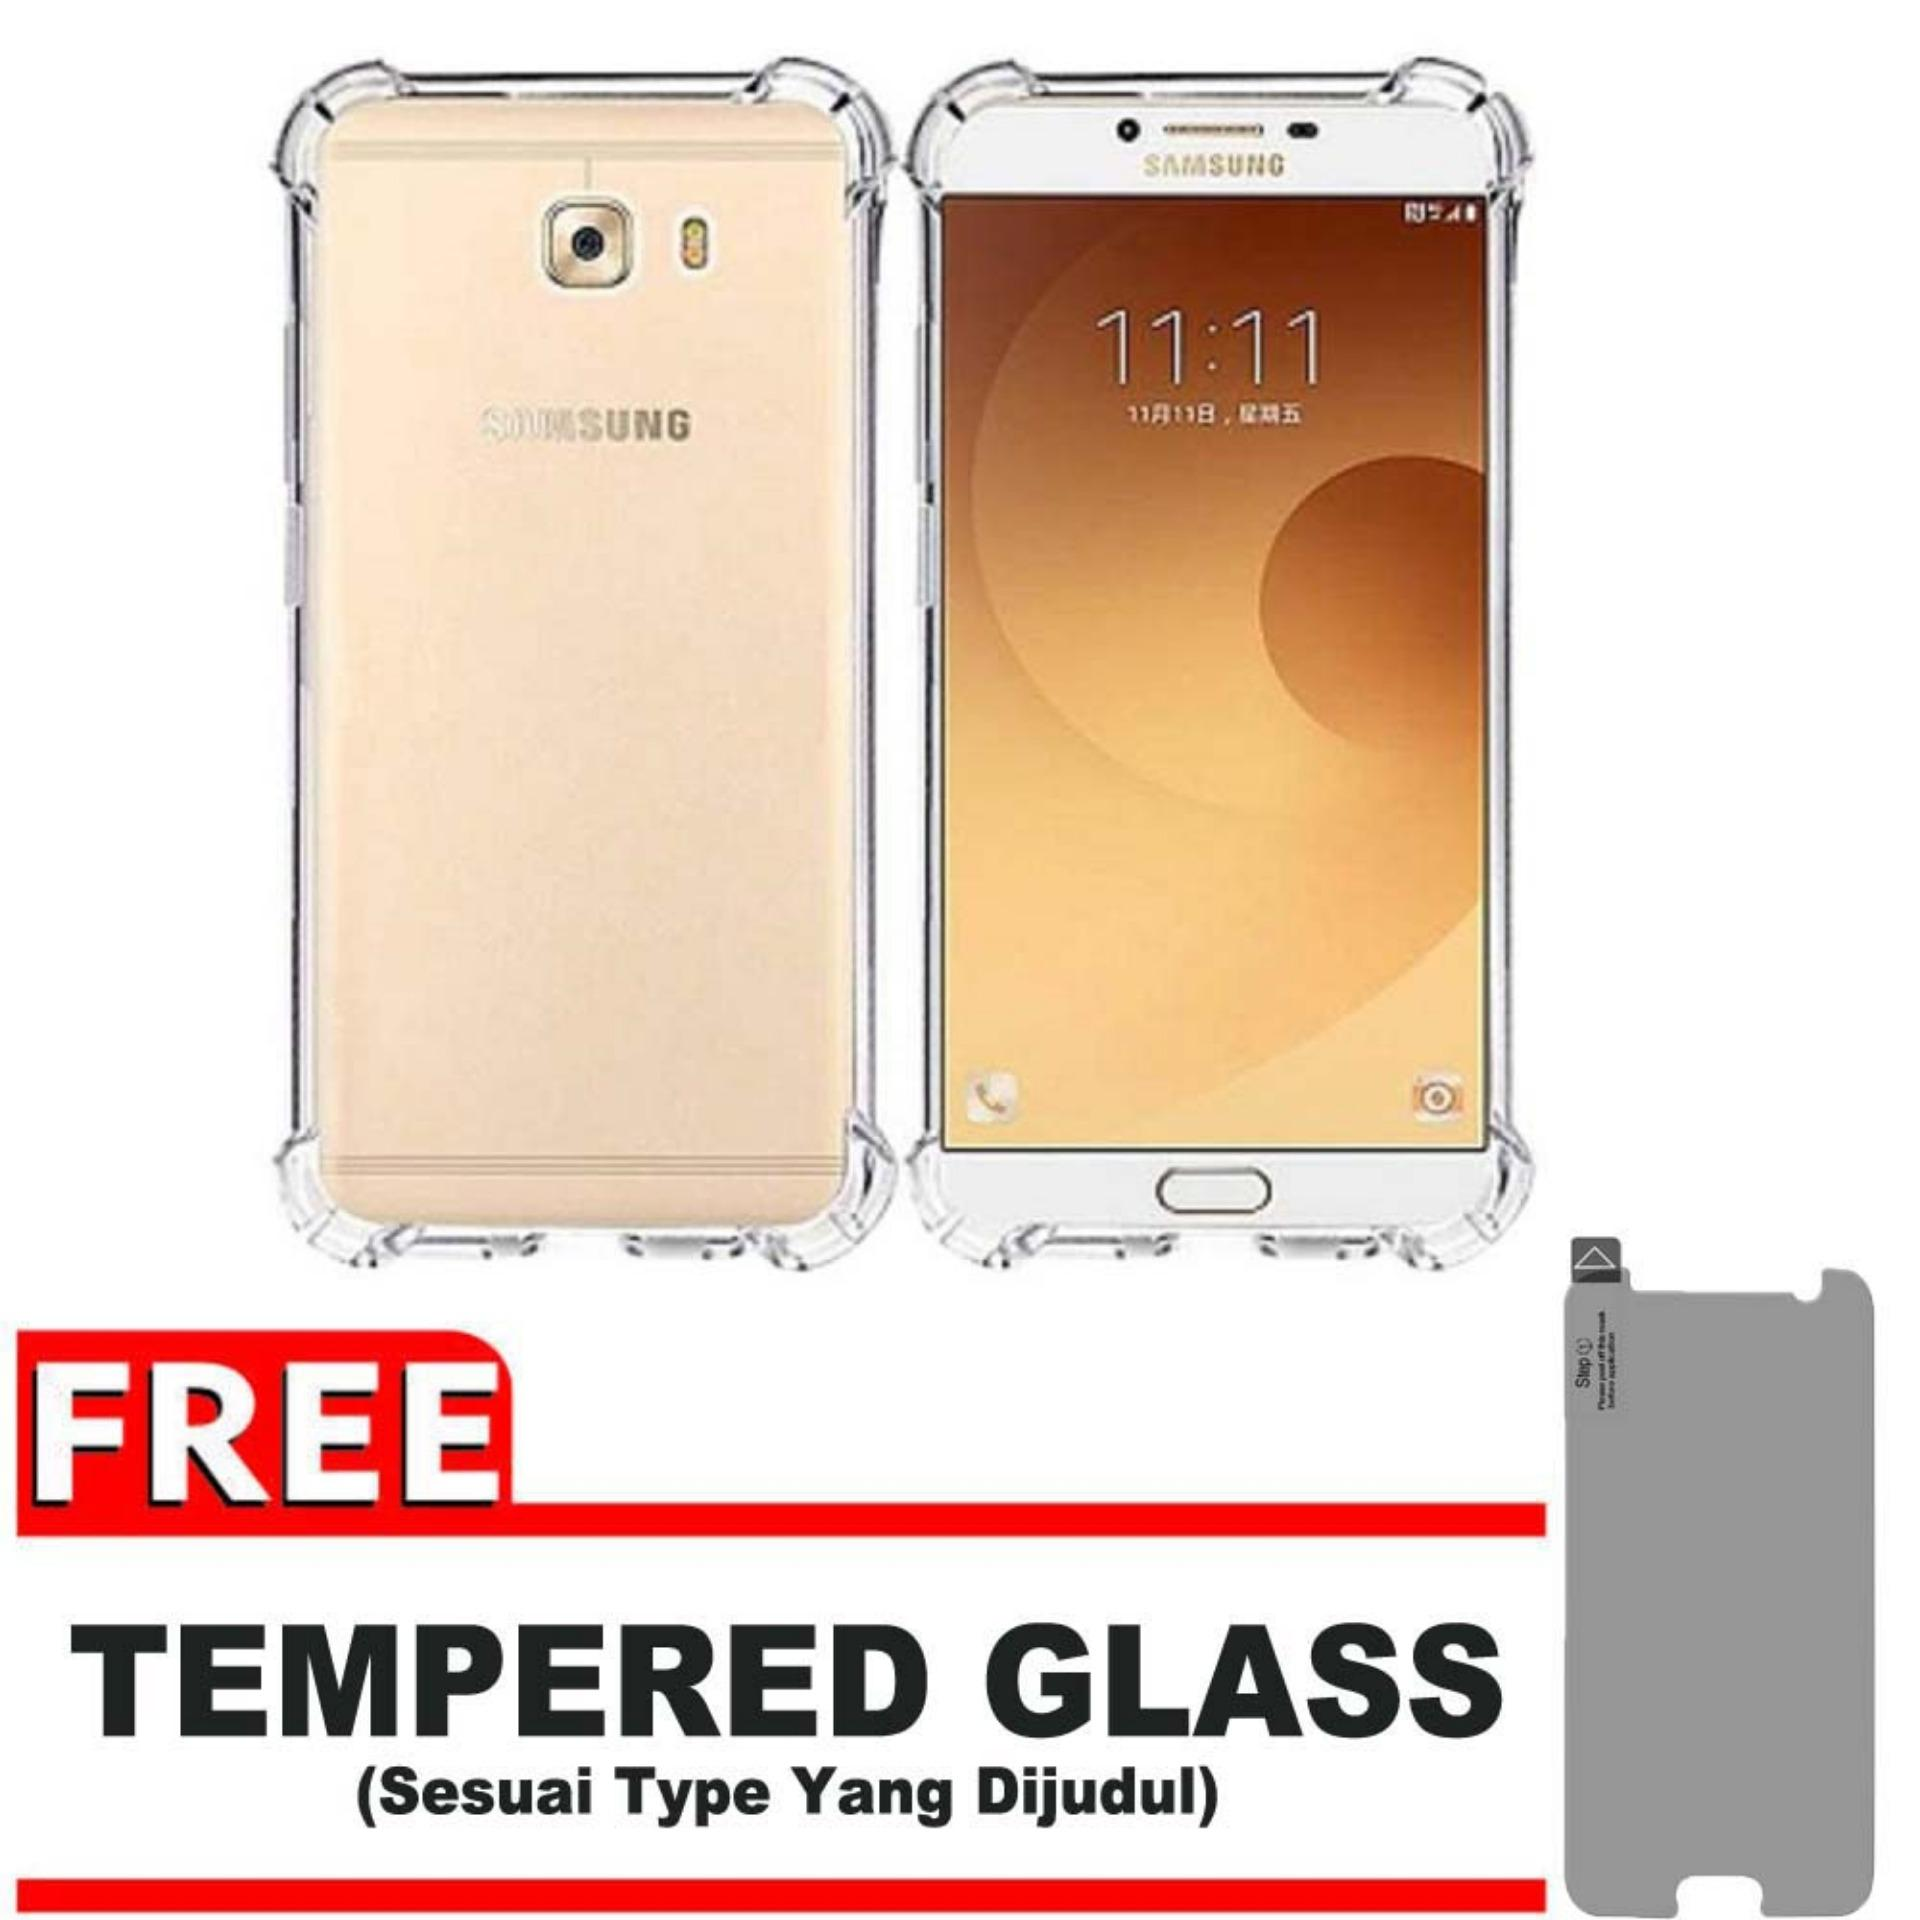 ShockCase for Samsung Galaxy C9 Pro / 4G LTE / Duos | Premium Softcase Jelly Anti Crack Shockproof - Gratis Free Tempered Glass Protector - Transparan